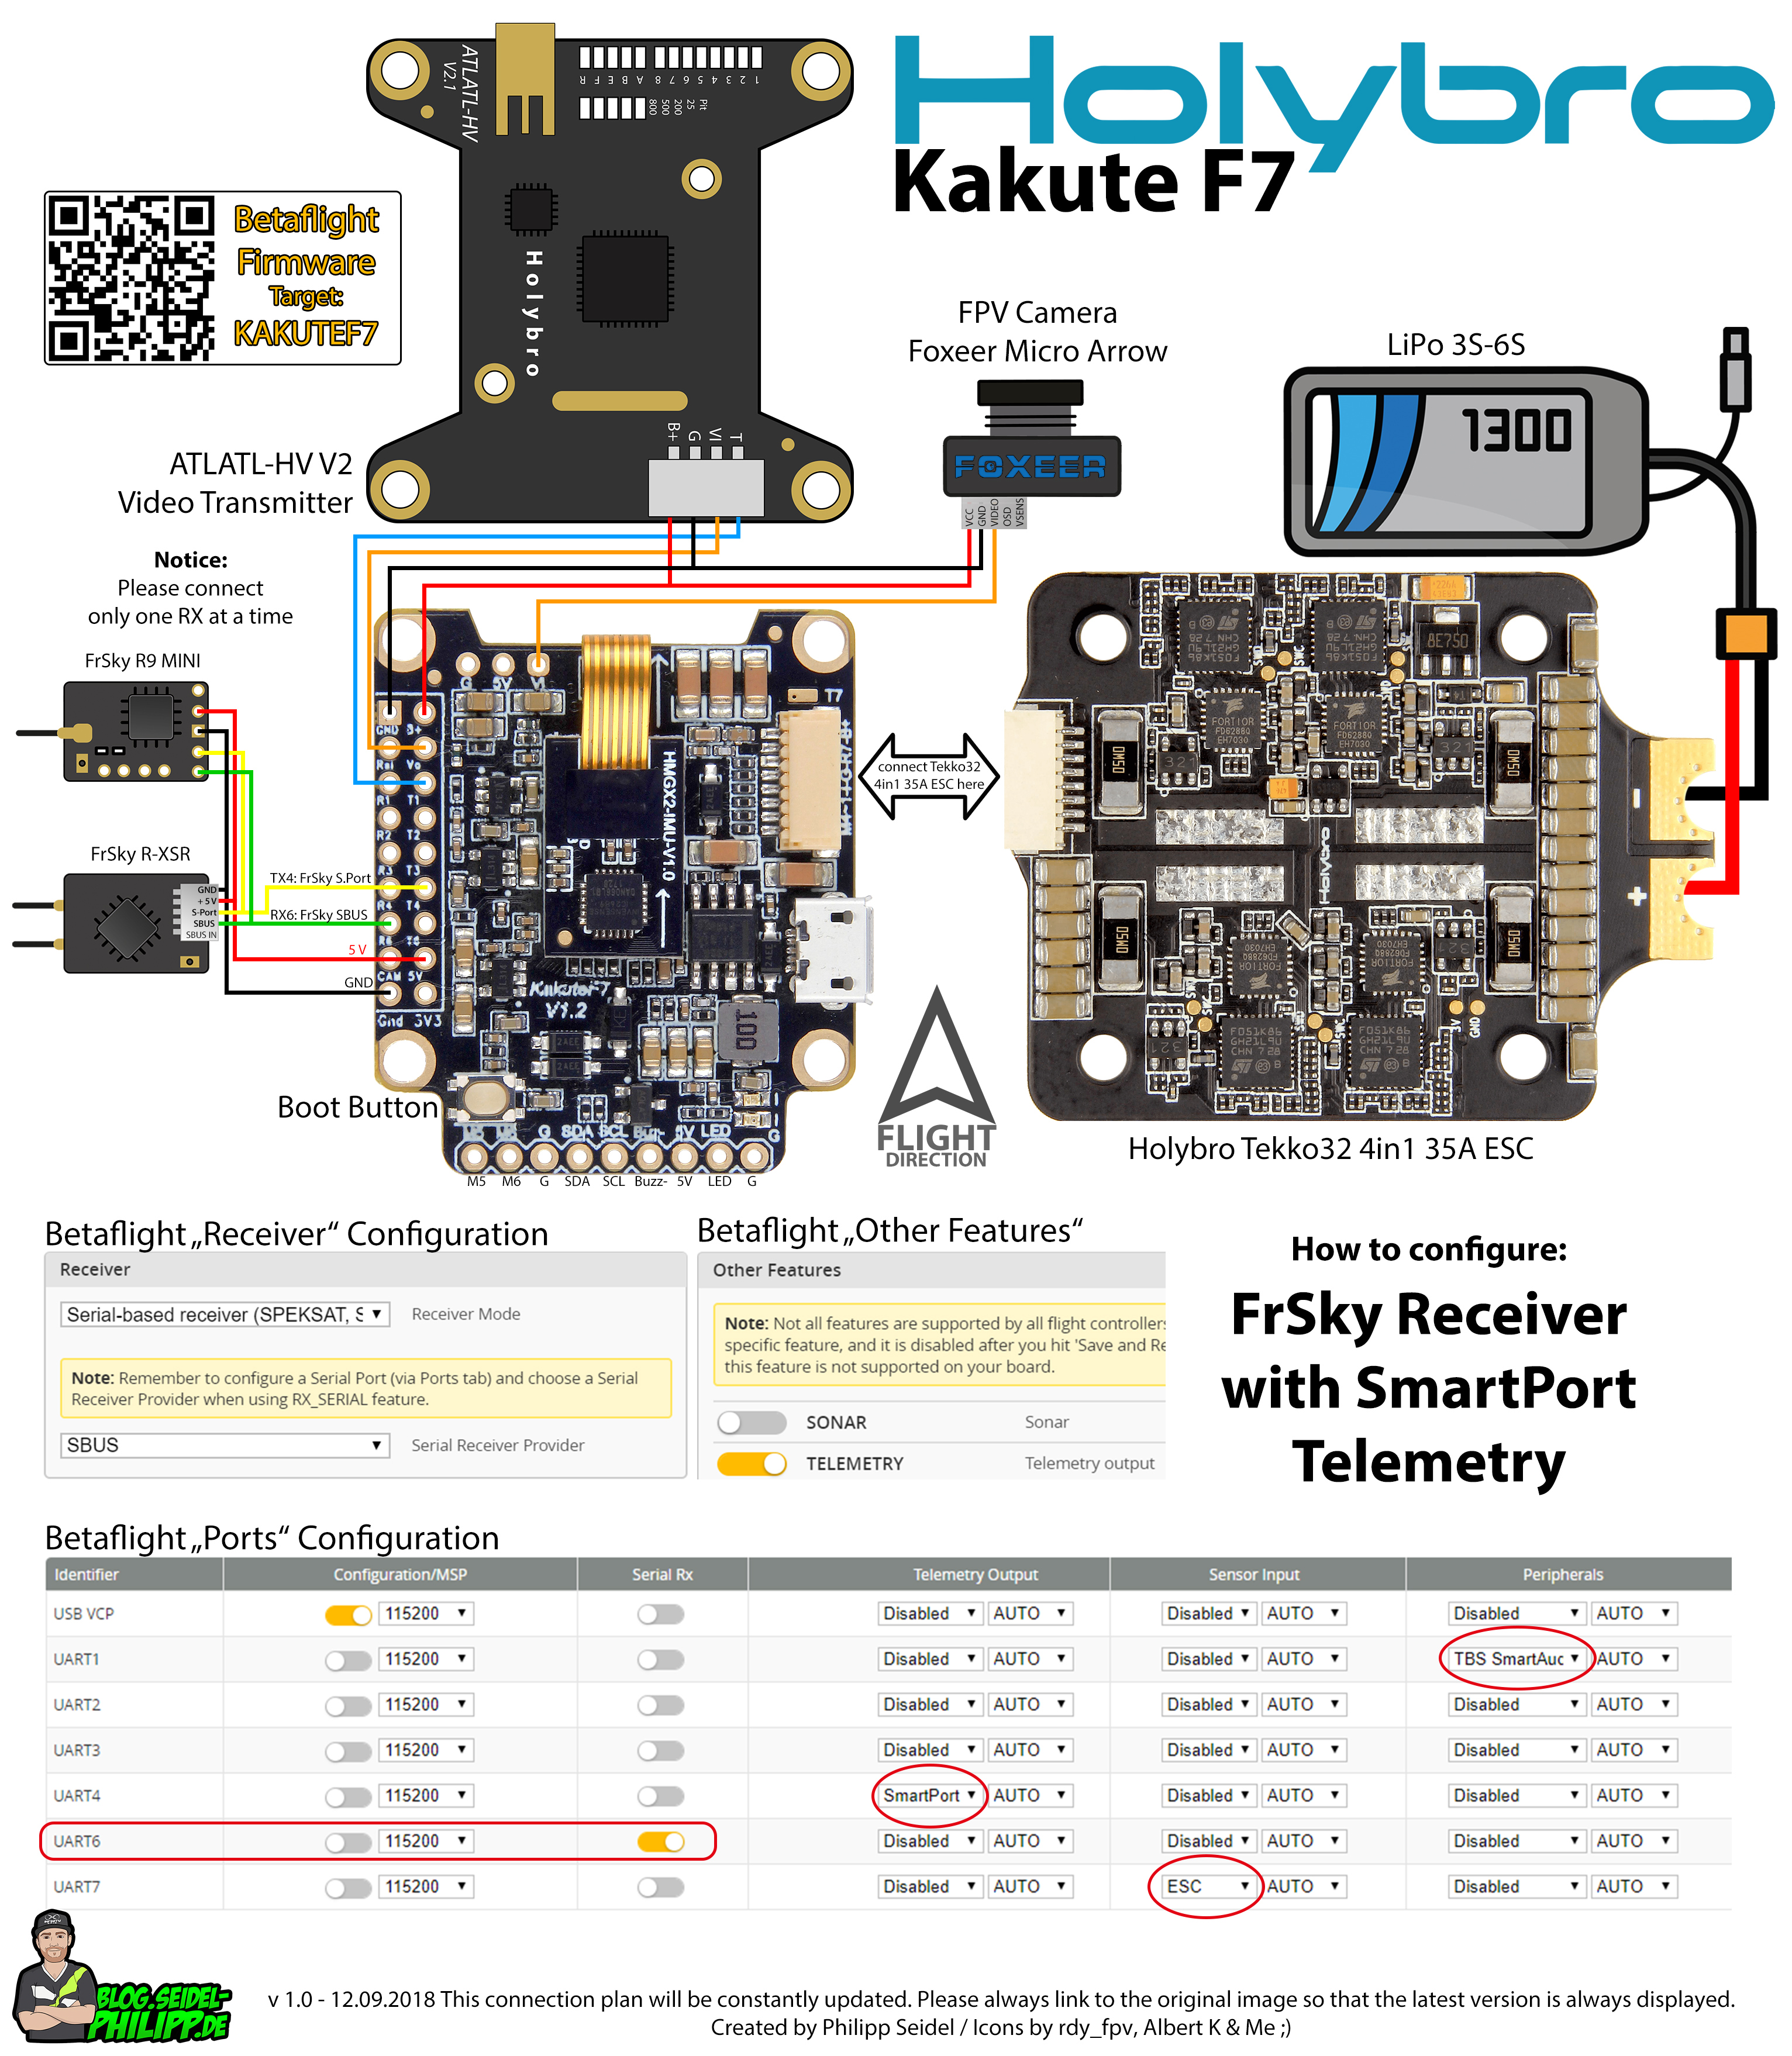 Holybro Kakute F7 Flight Controller Anschlussplan Wiringplan Spektrum Satellite Adapter Wiring Diagram Receiver